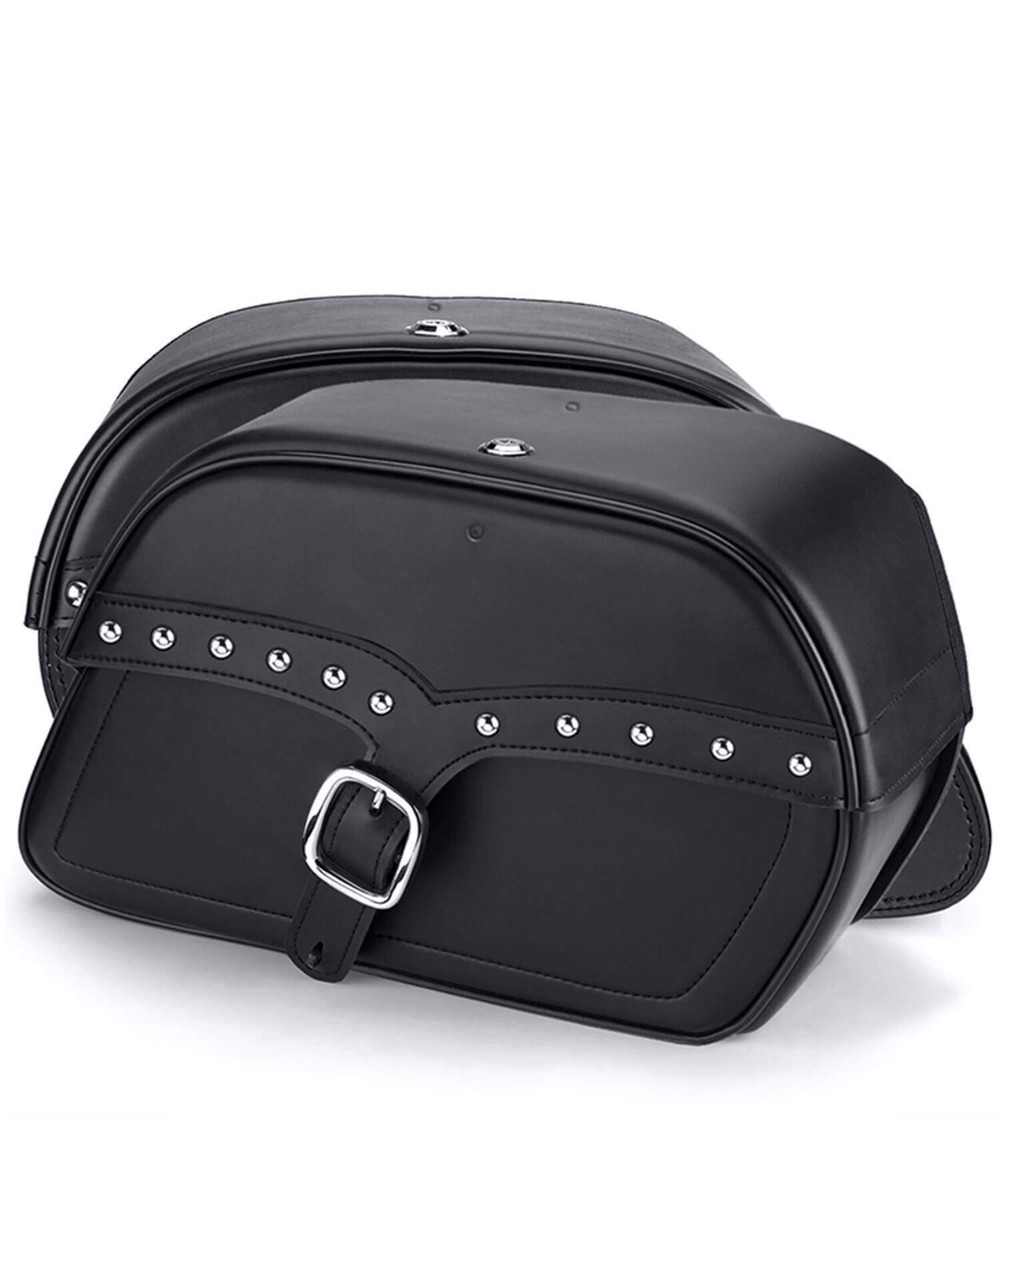 Honda 1500 Valkyrie Standard Charger Single Strap Studded Medium Motorcycle Saddlebags Both Bags View